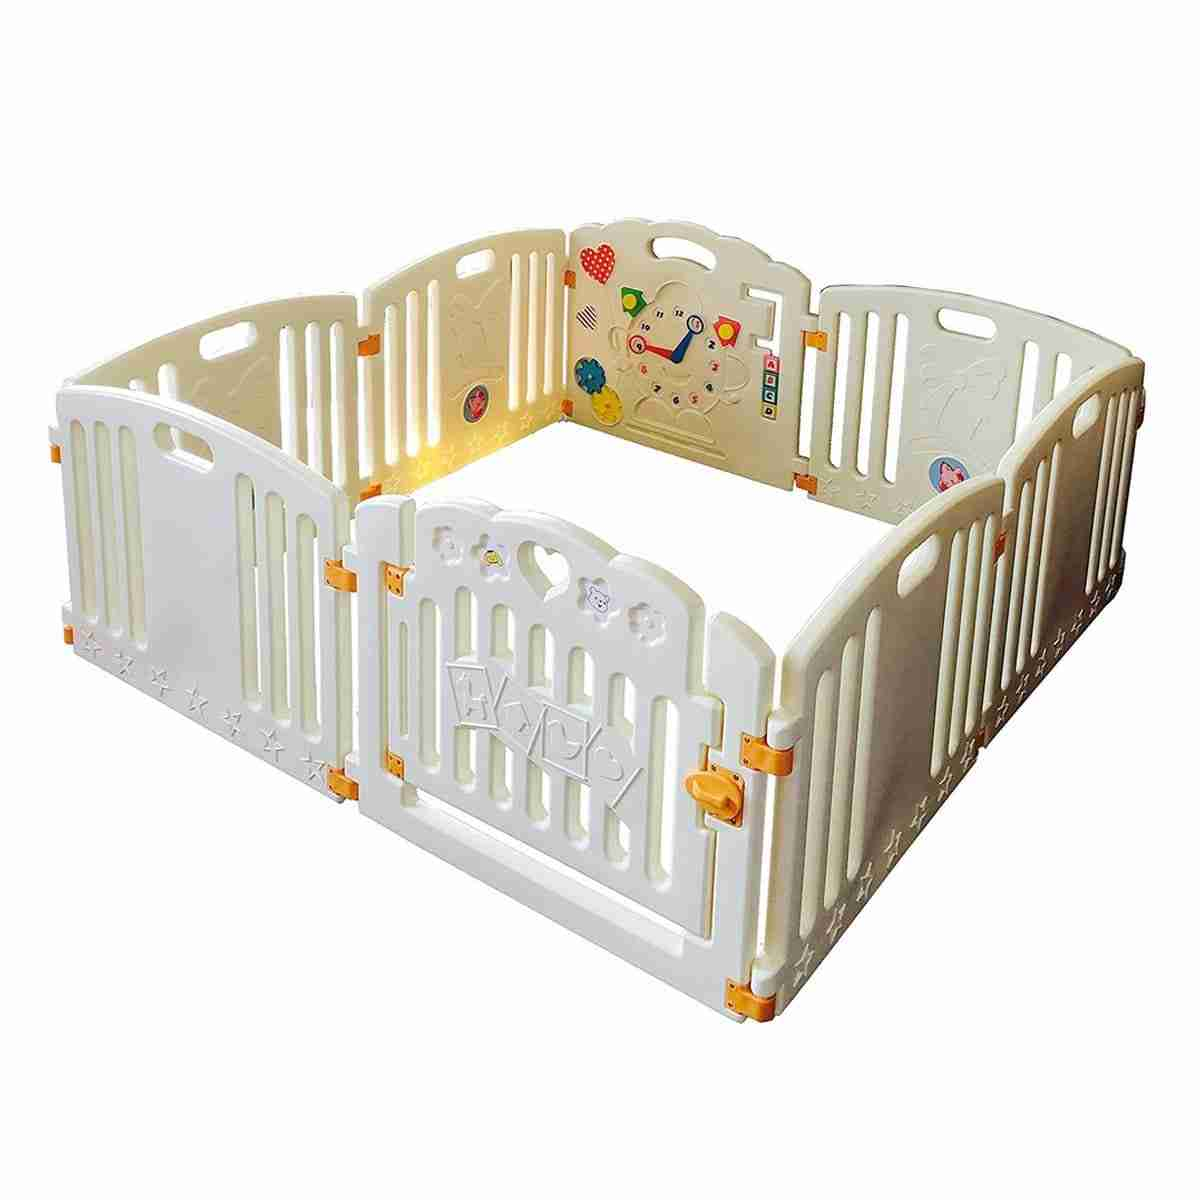 Birthday Gift Playpen Nursery Playpen Children Play Pen play Mats Included